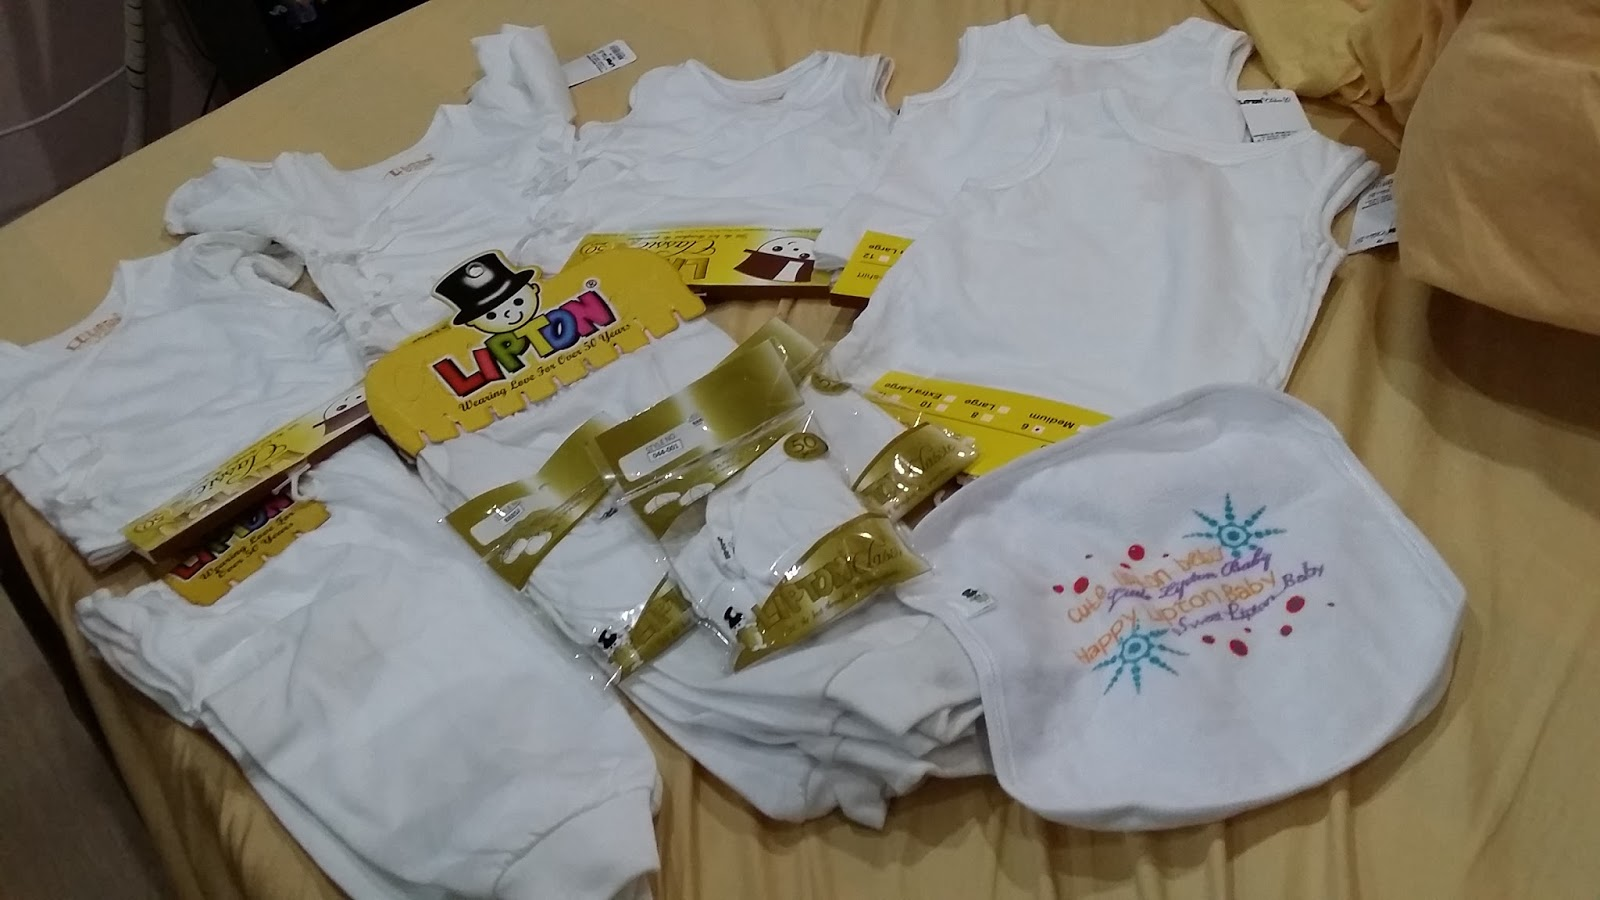 730fddc9b5f6 ... that sells Lipton baby clothes and I was not disappointed because I  found this shop called Lipton Baby Garments and Accessories. I bought the  following